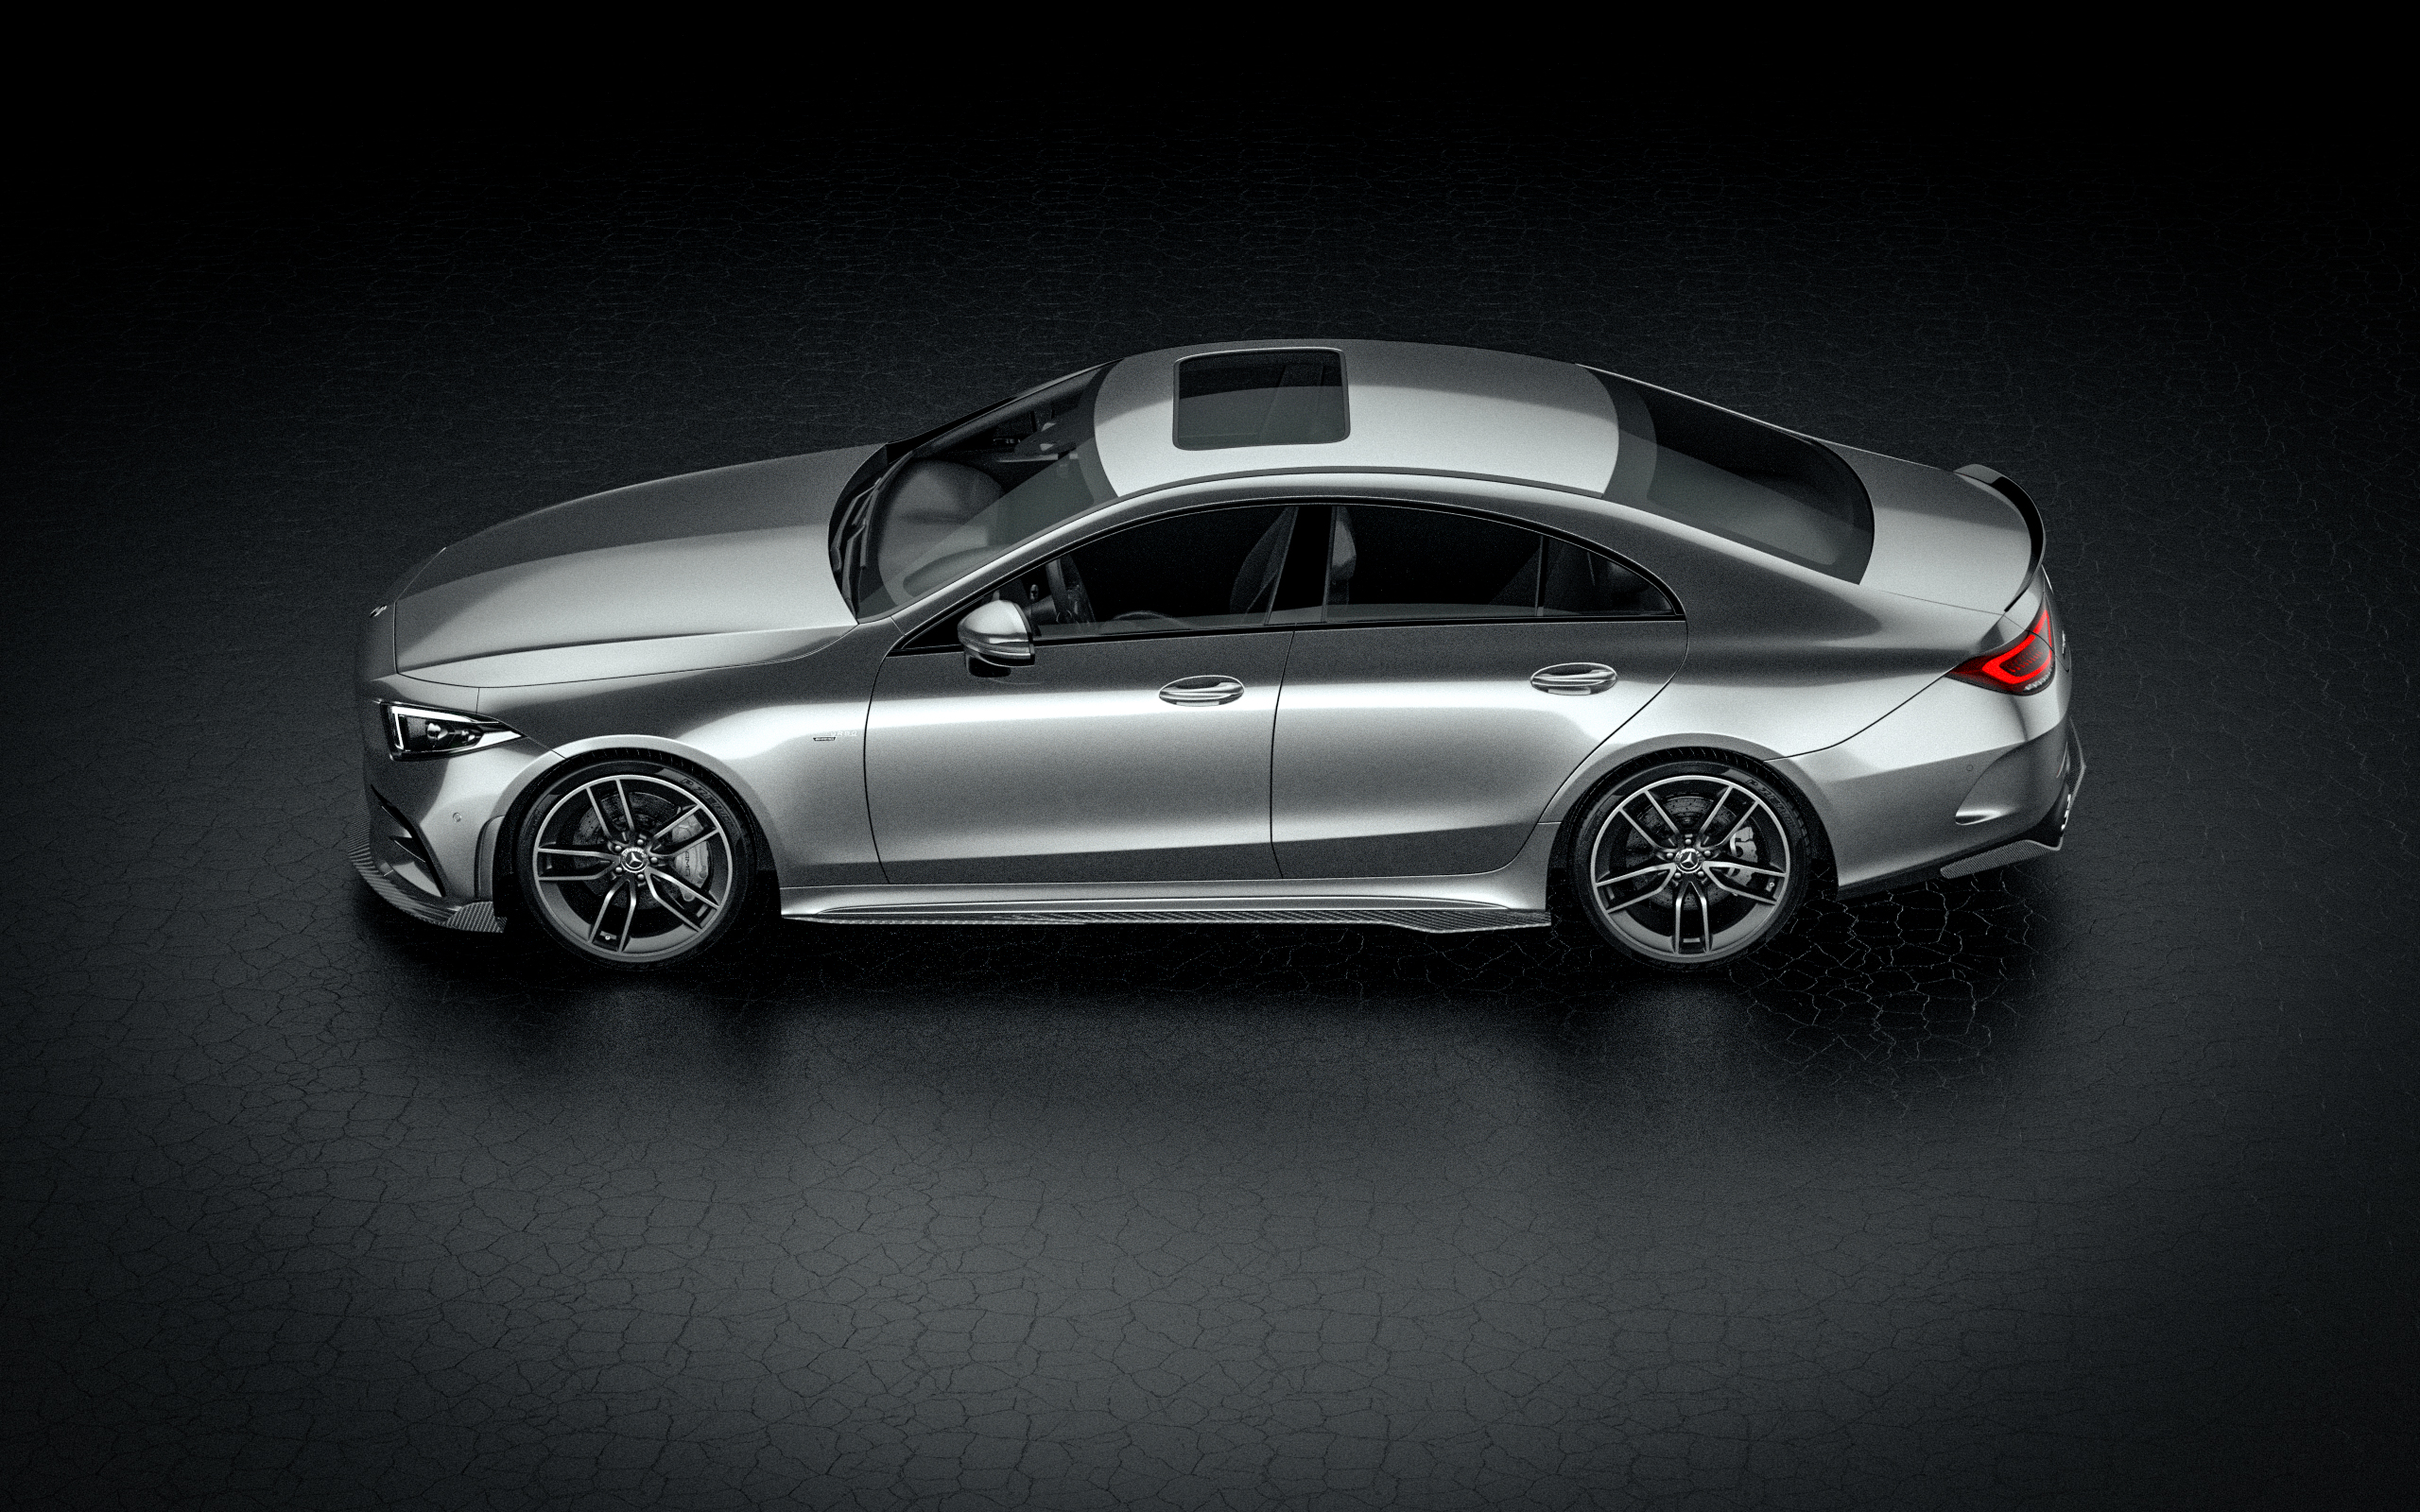 360degree viewer Mercedes-Benz CLS53 AMG with bodykit by ZACOE